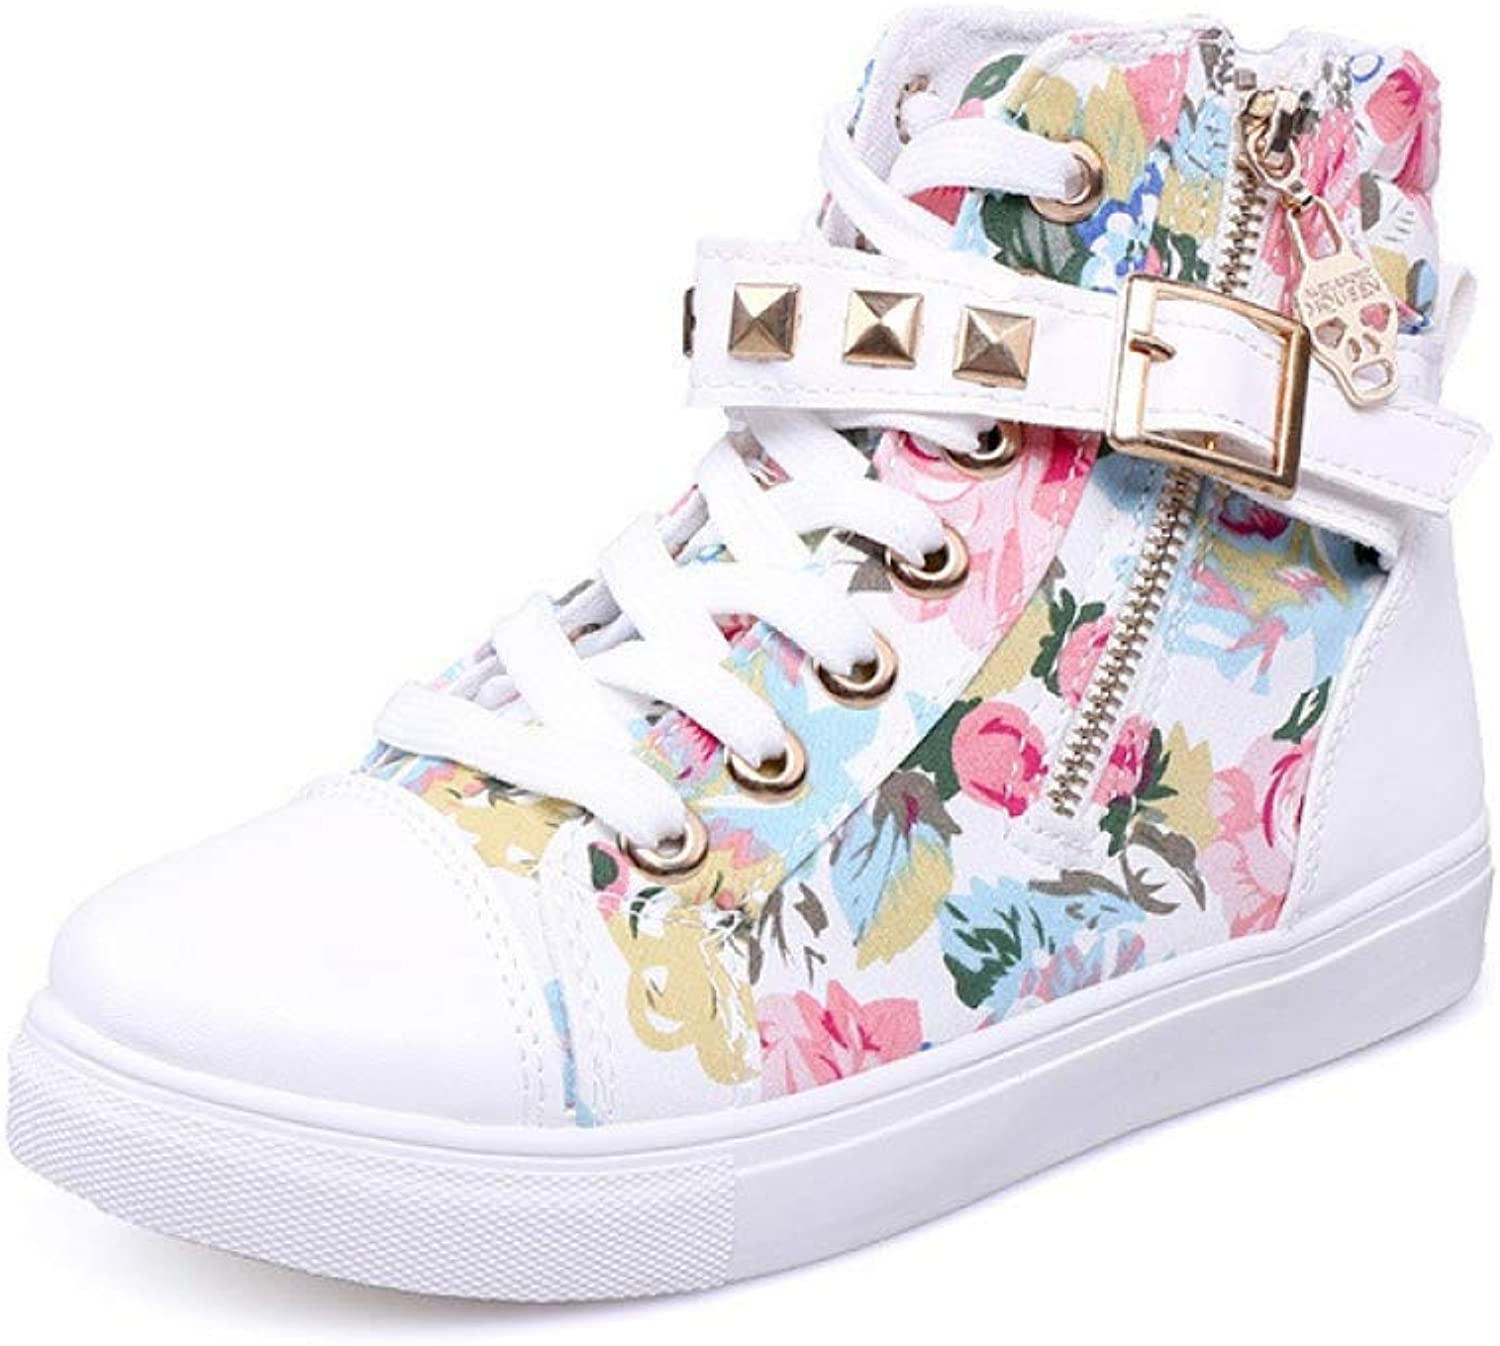 T-JULY Women Fashion High Top Trainers Canvas shoes Women Casual shoes Female Rivet Lace Up Solid Trainers